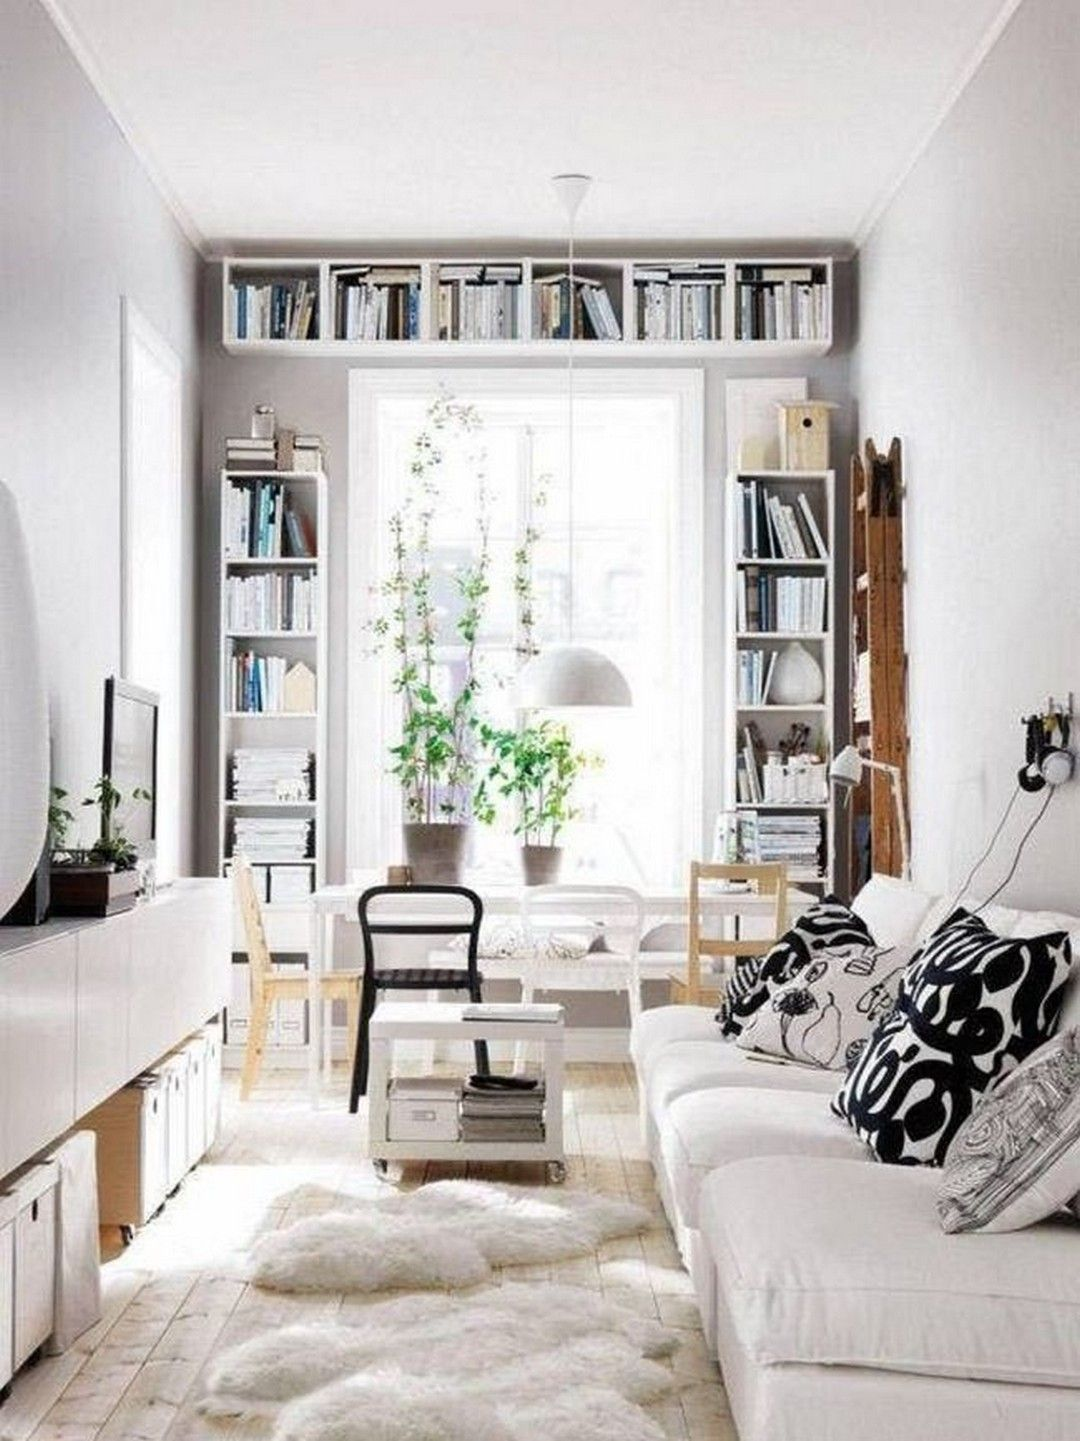 9 Great Ideas of Living Room Apartment Decor Ideas to Copy on Yourself #apartmentlivingrooms